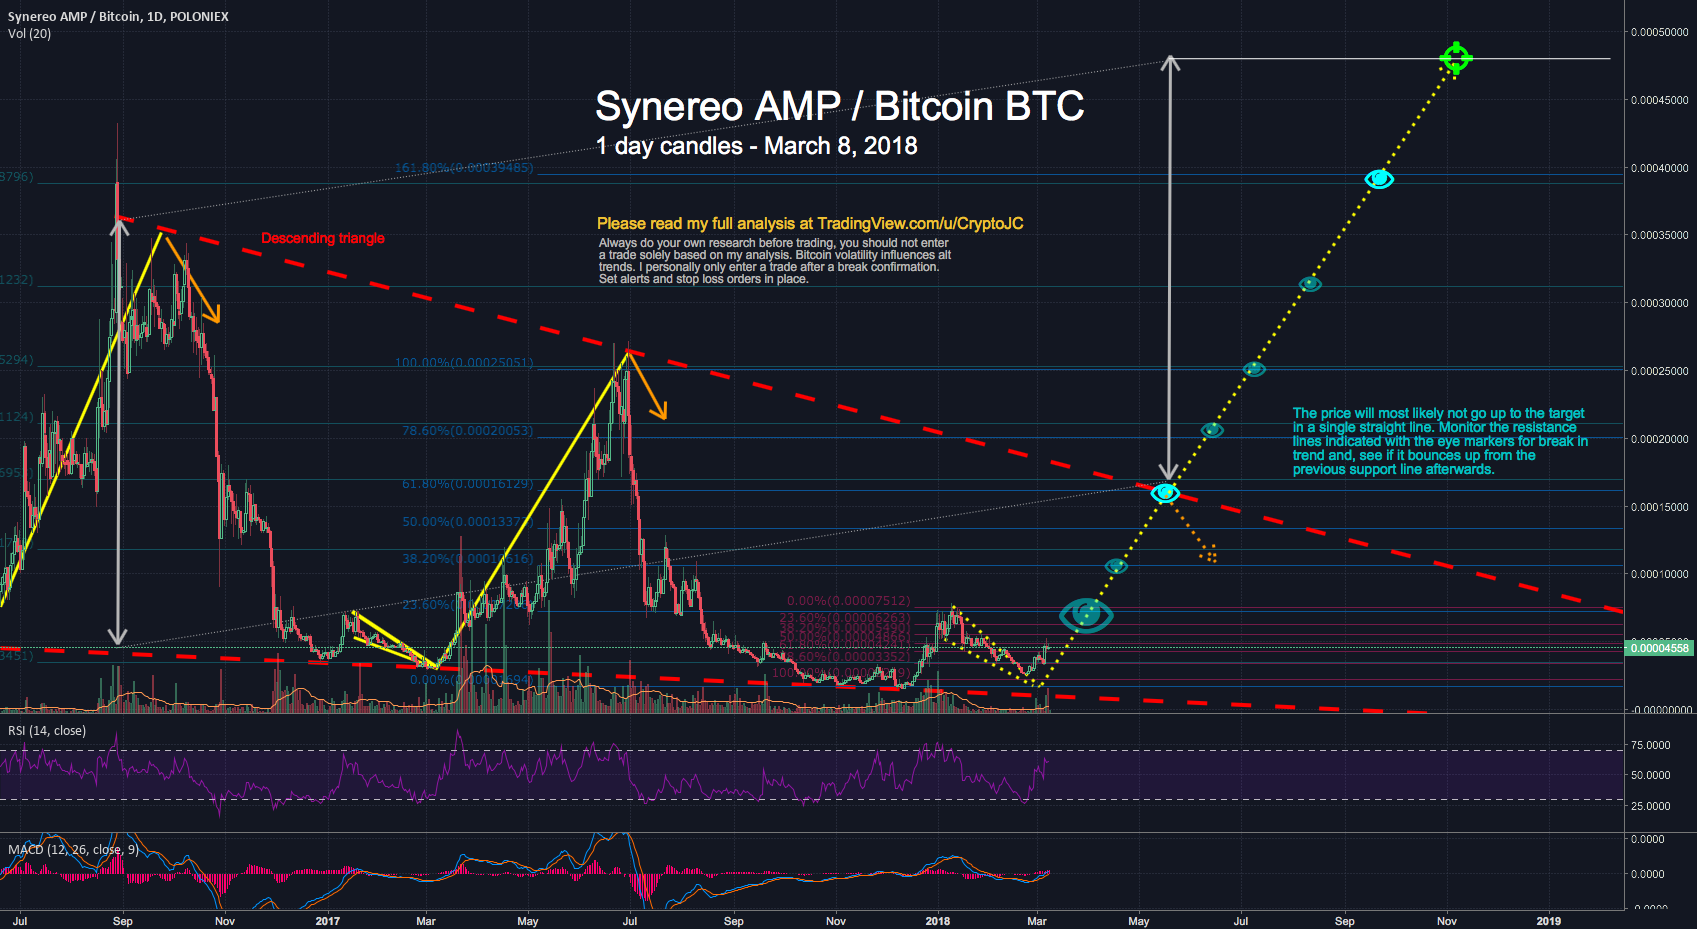 Bullish: Synereo AMP Bitcoin broke out of Falling Wedge